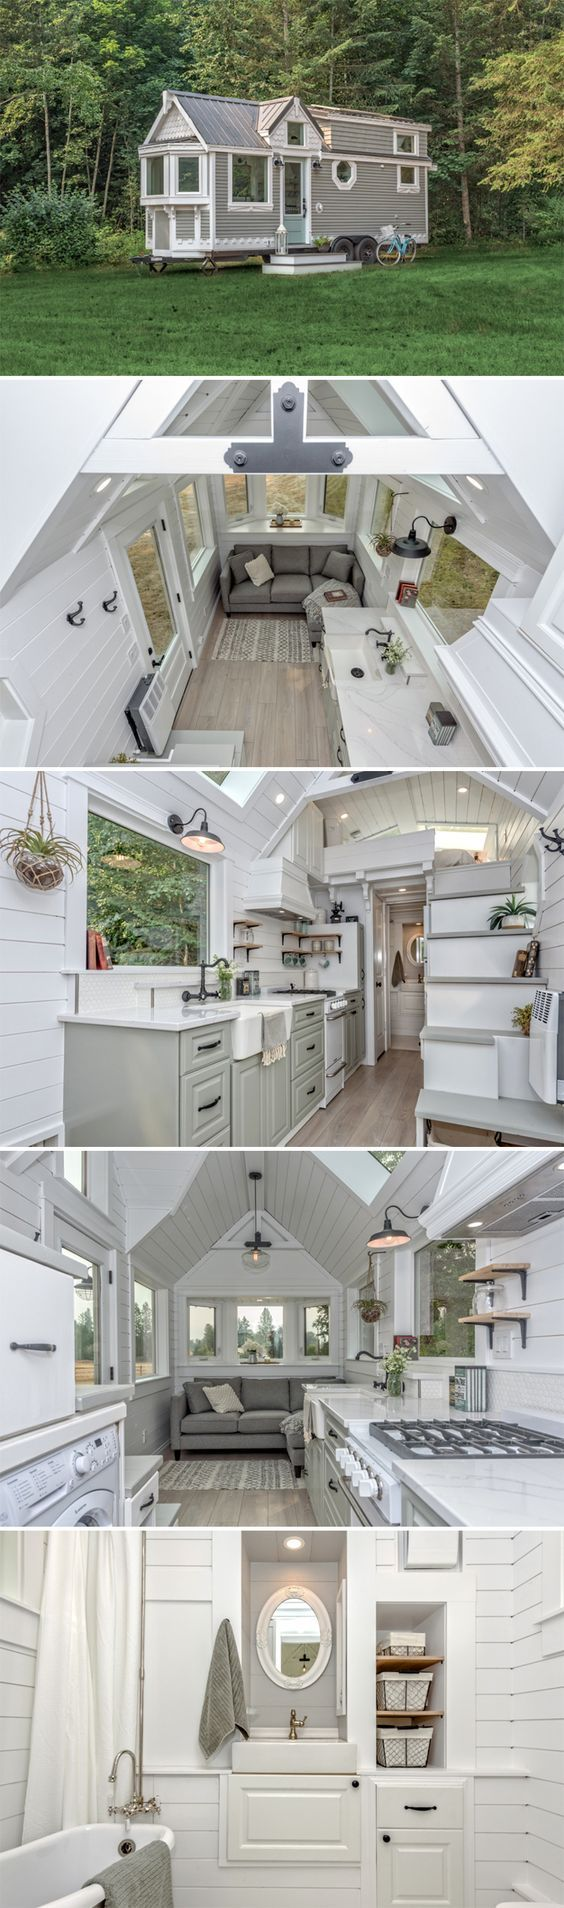 Converting sheds into livable space miniature homes and spaces - Heritage By Summit Tiny Homes